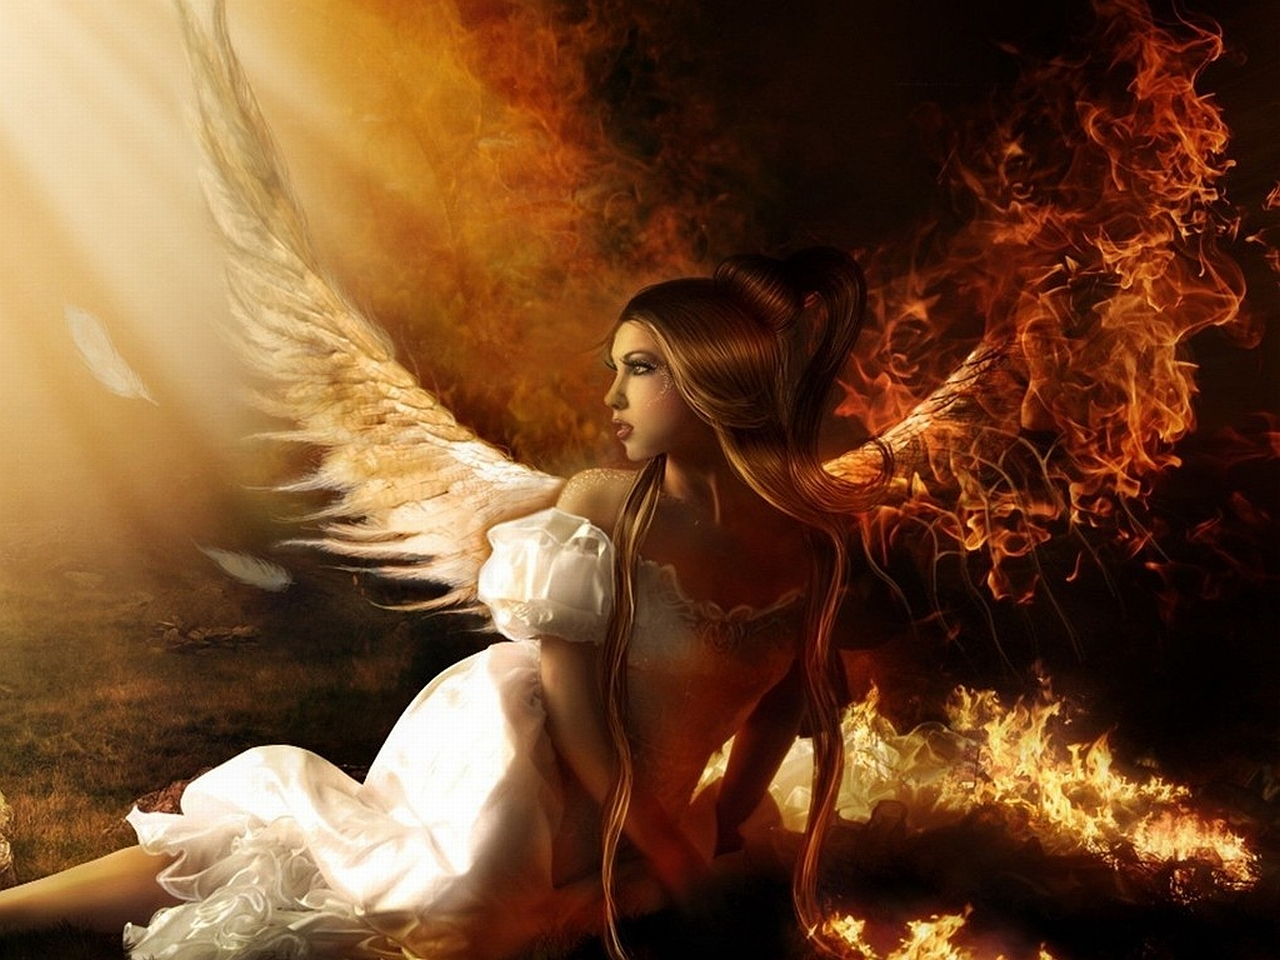 Angel Wallpaper and Background 1280x960 ID183623 1280x960